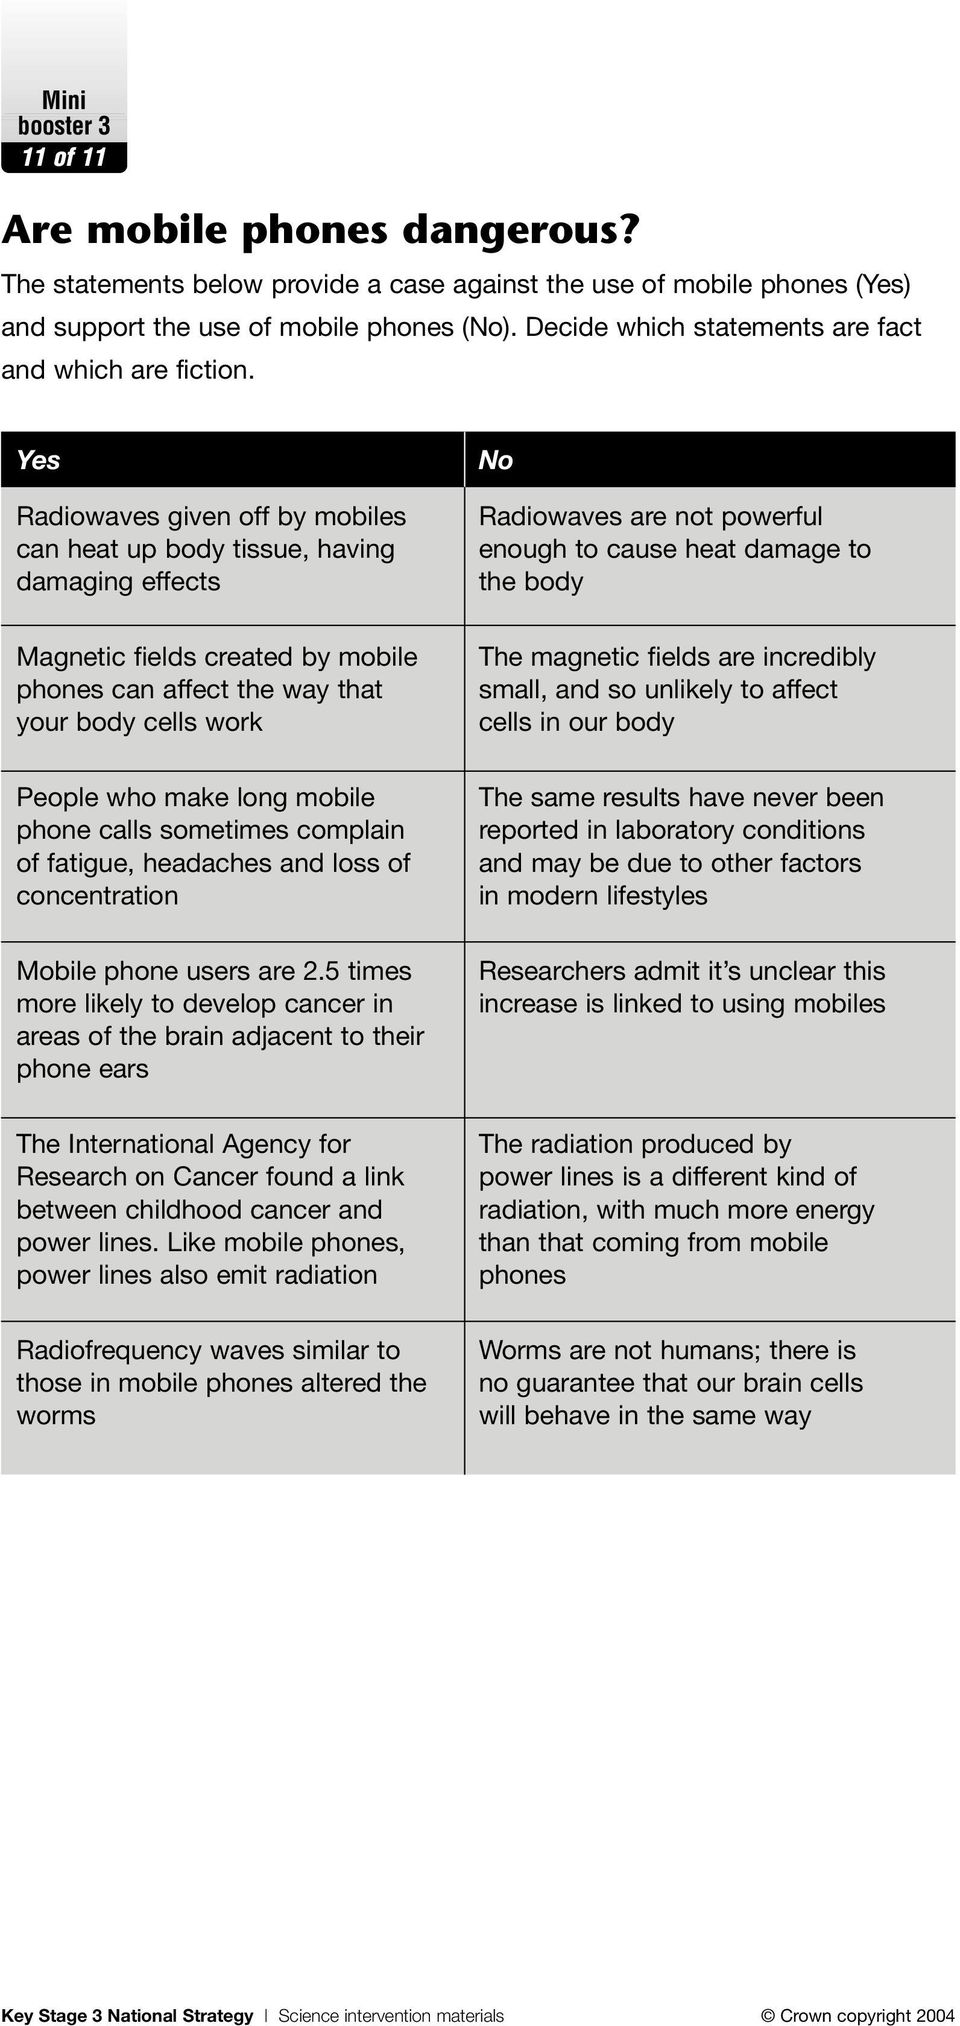 Yes Radiowaves given off by mobiles can heat up body tissue, having damaging effects Magnetic fields created by mobile phones can affect the way that your body cells work People who make long mobile